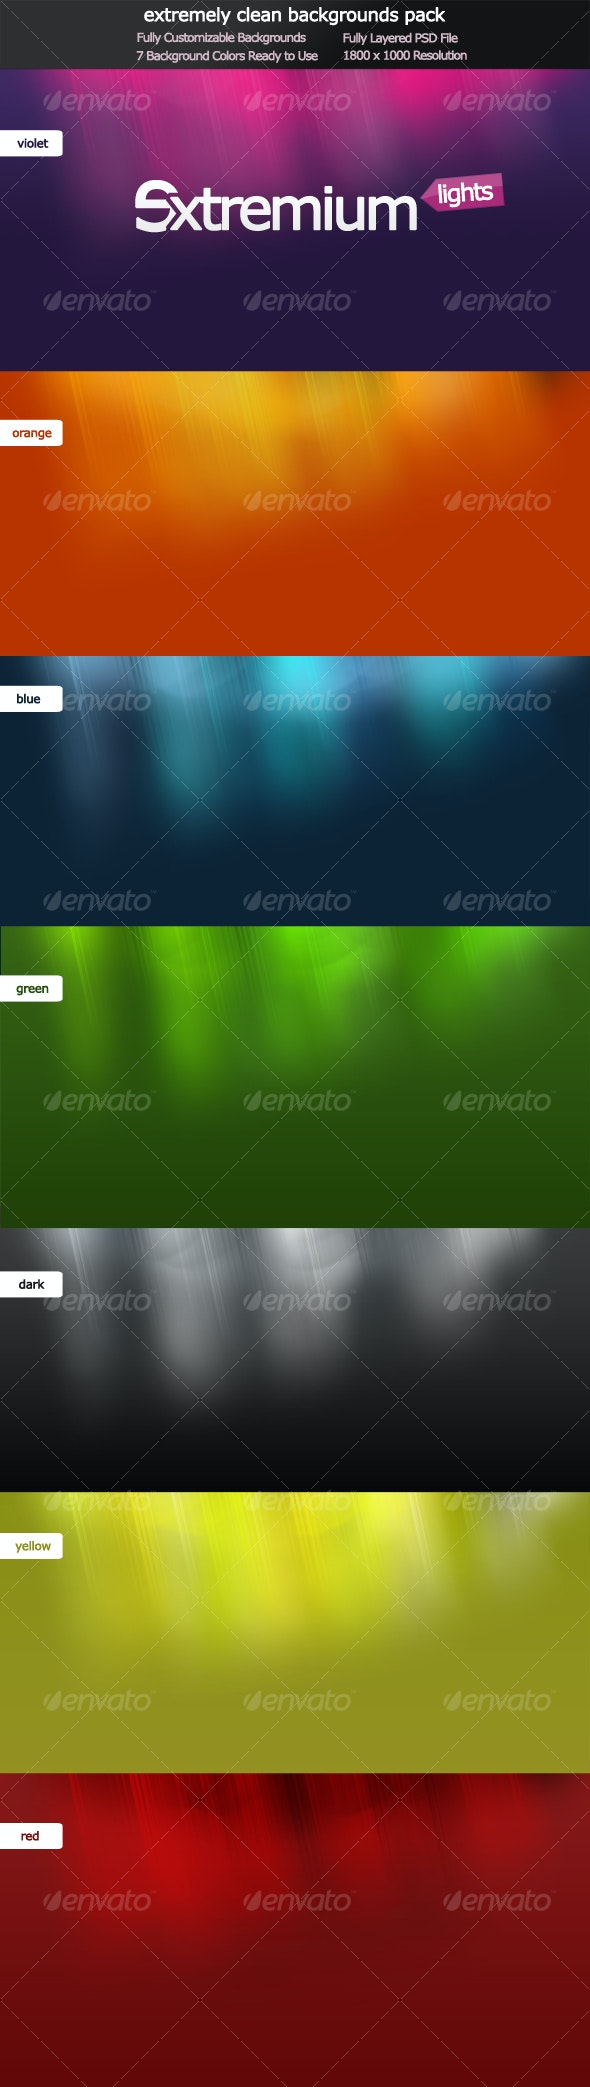 Extremium Lights - extremely clean background pack - Backgrounds Graphics